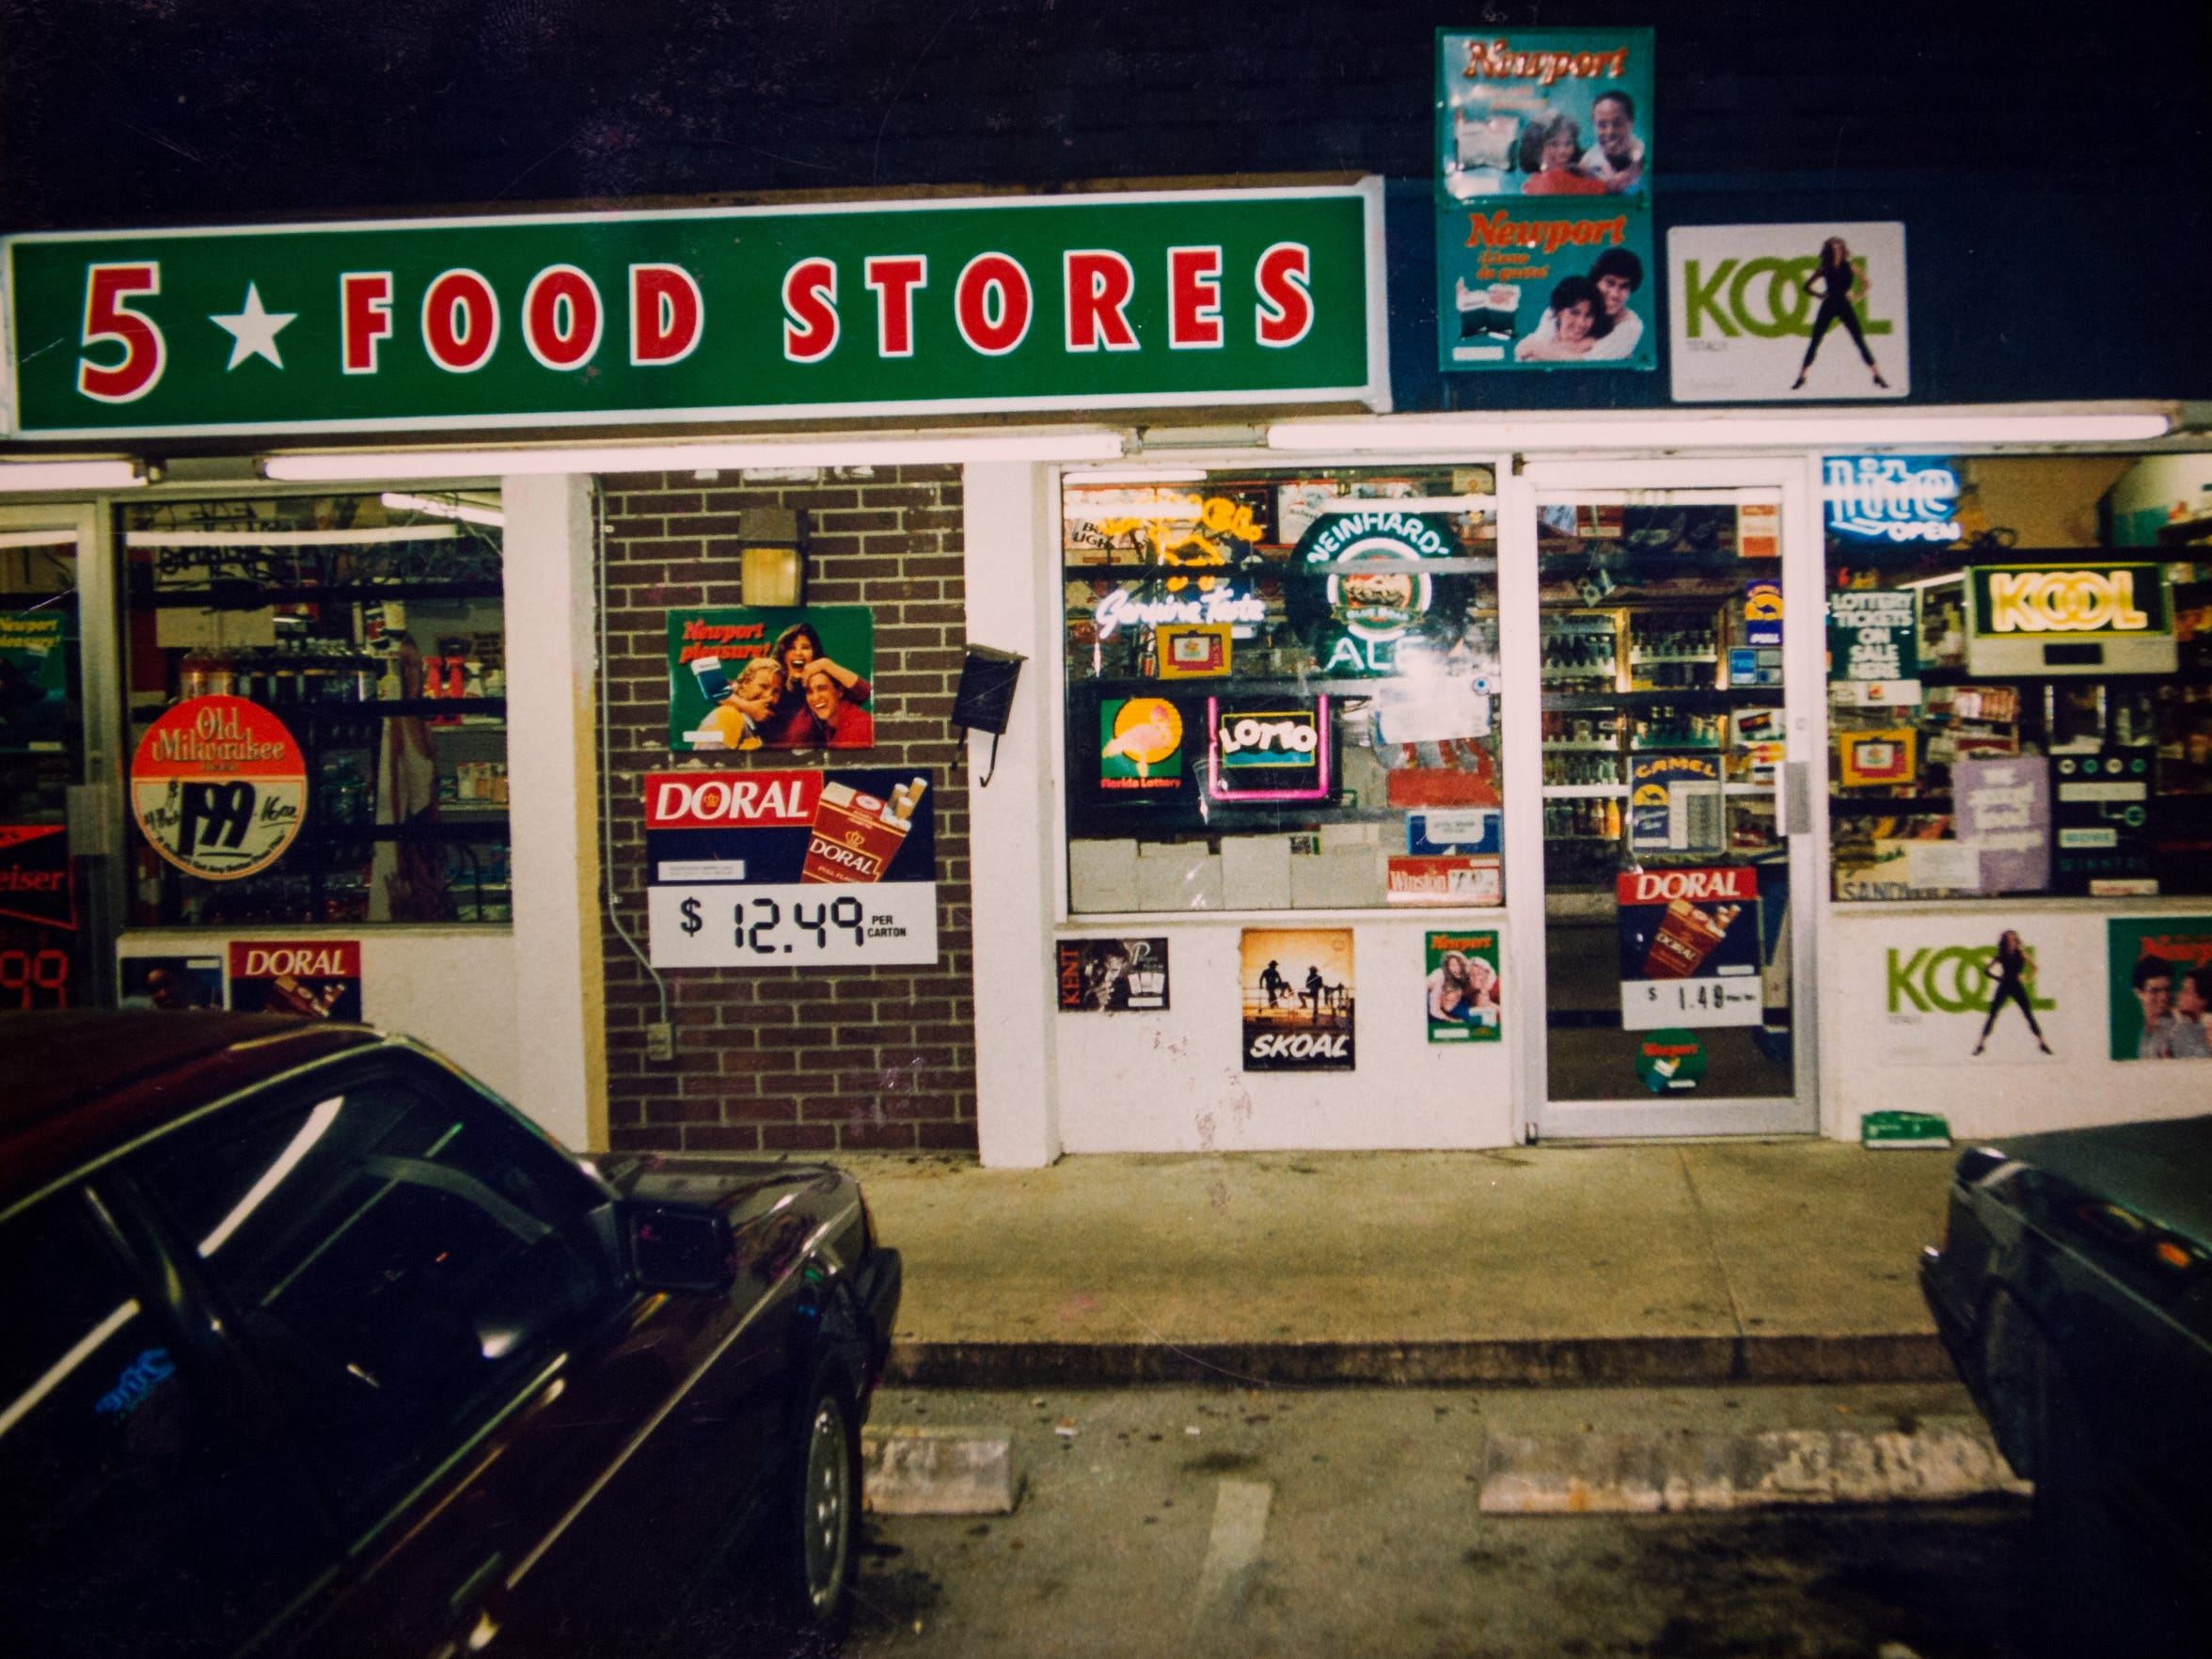 The Five Star Food Store family business on Indrio Road in Lakewood Park, where Tariq Hussain was working when he was shot and killed in 1995, is seen in an evidence photo from the case. Lanadieal Ashe, of Fort Pierce, 17 years old at the time, was later convicted of Hussain's murder.